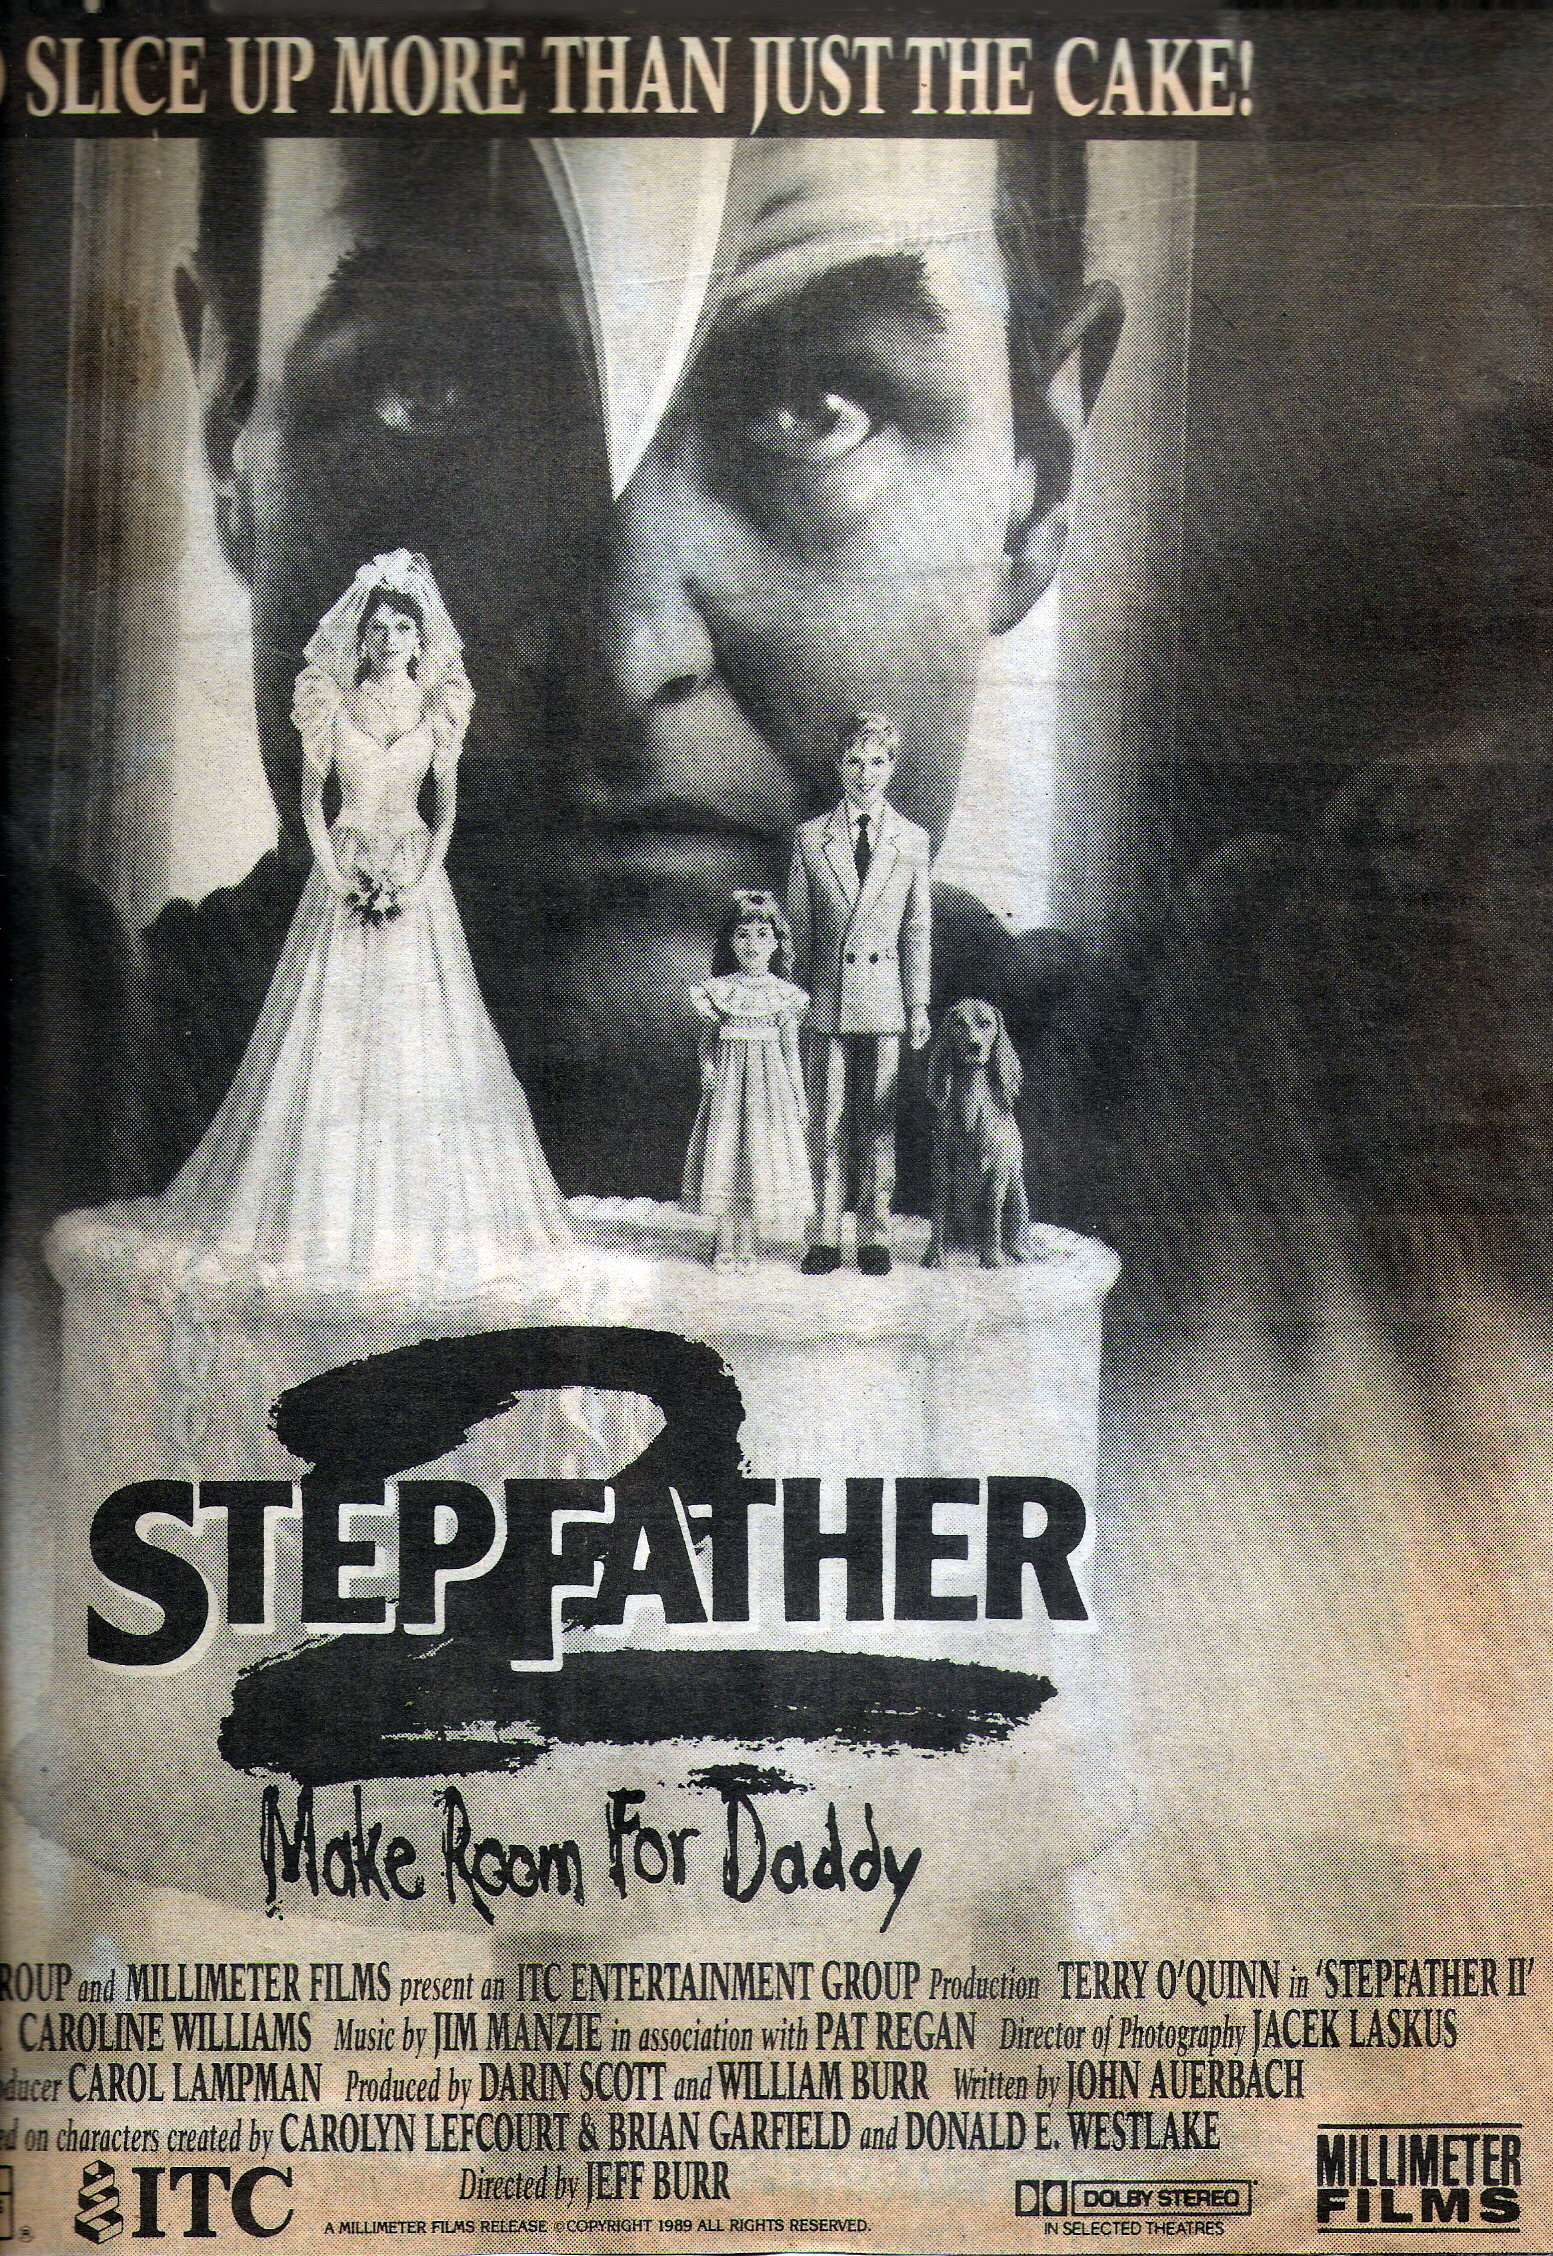 Terry O'Quinn in Stepfather II featuring 'Tiffany' by Parousia